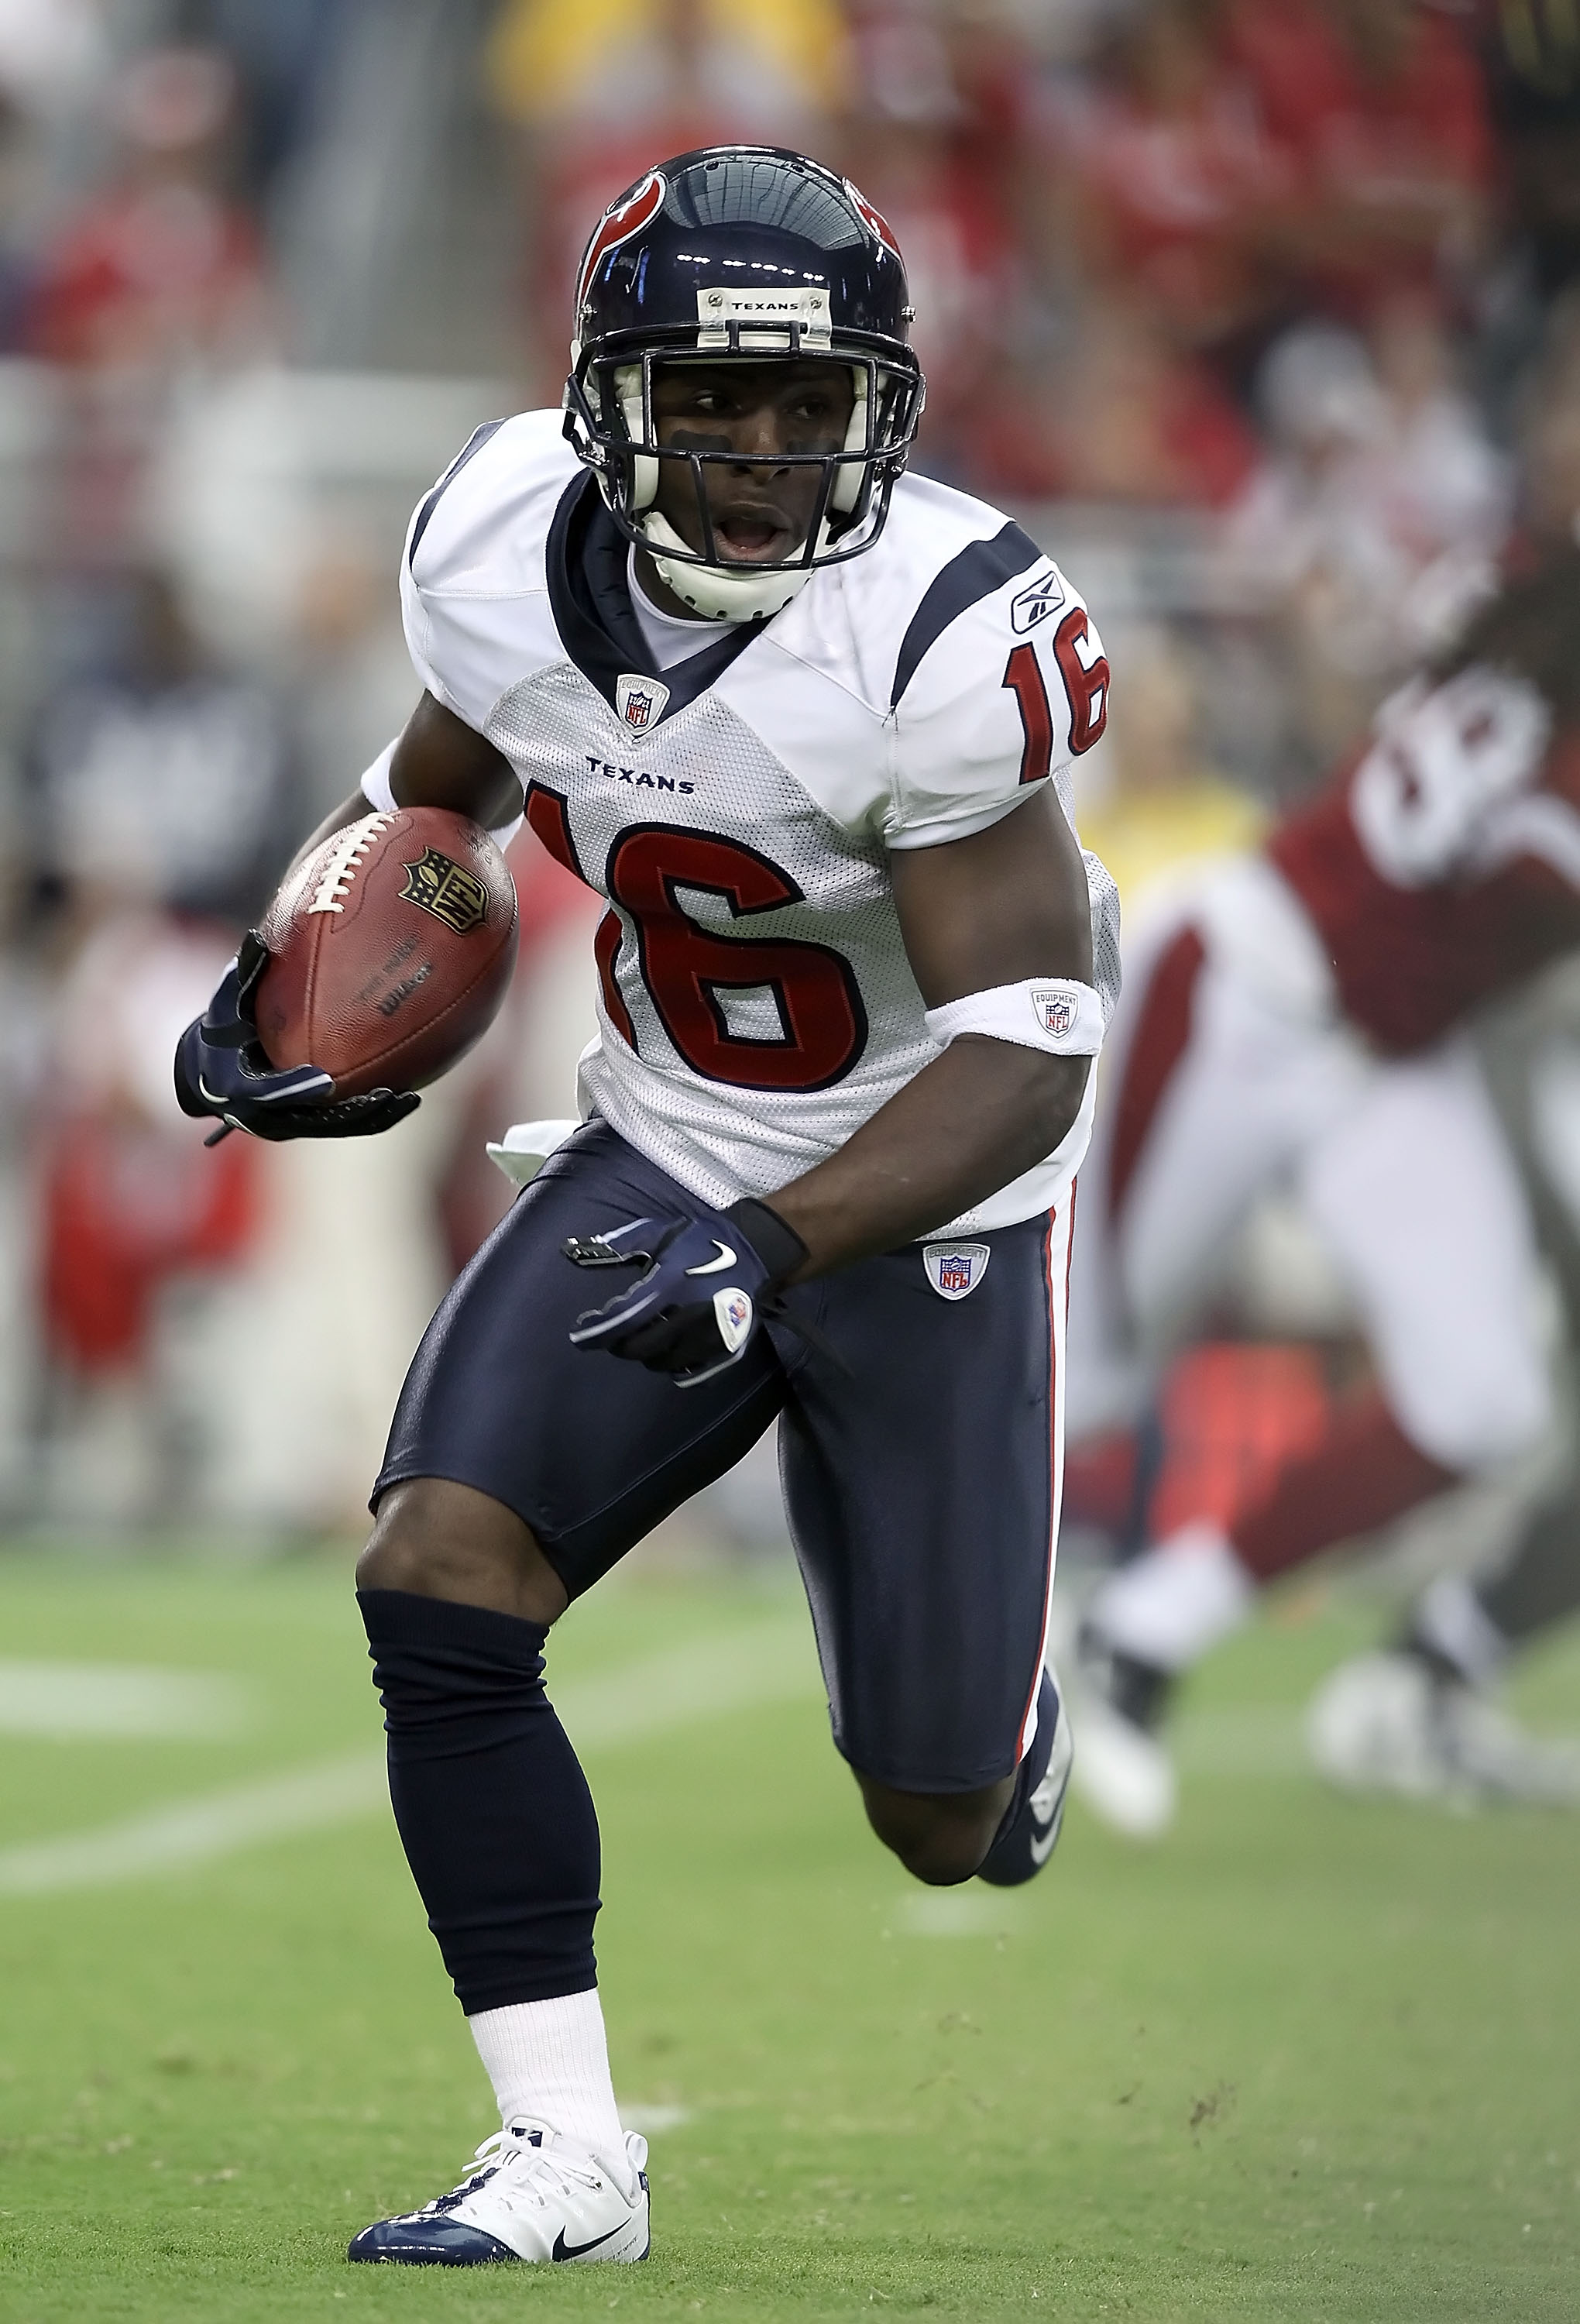 GLENDALE, AZ - AUGUST 14:  Wide receiver Trindon Holliday #16 of the Houston Texans returns a kick off against the Arizona Cardinals during preseason NFL game at the University of Phoenix Stadium on August 14, 2010 in Glendale, Arizona.  The Cardinals def